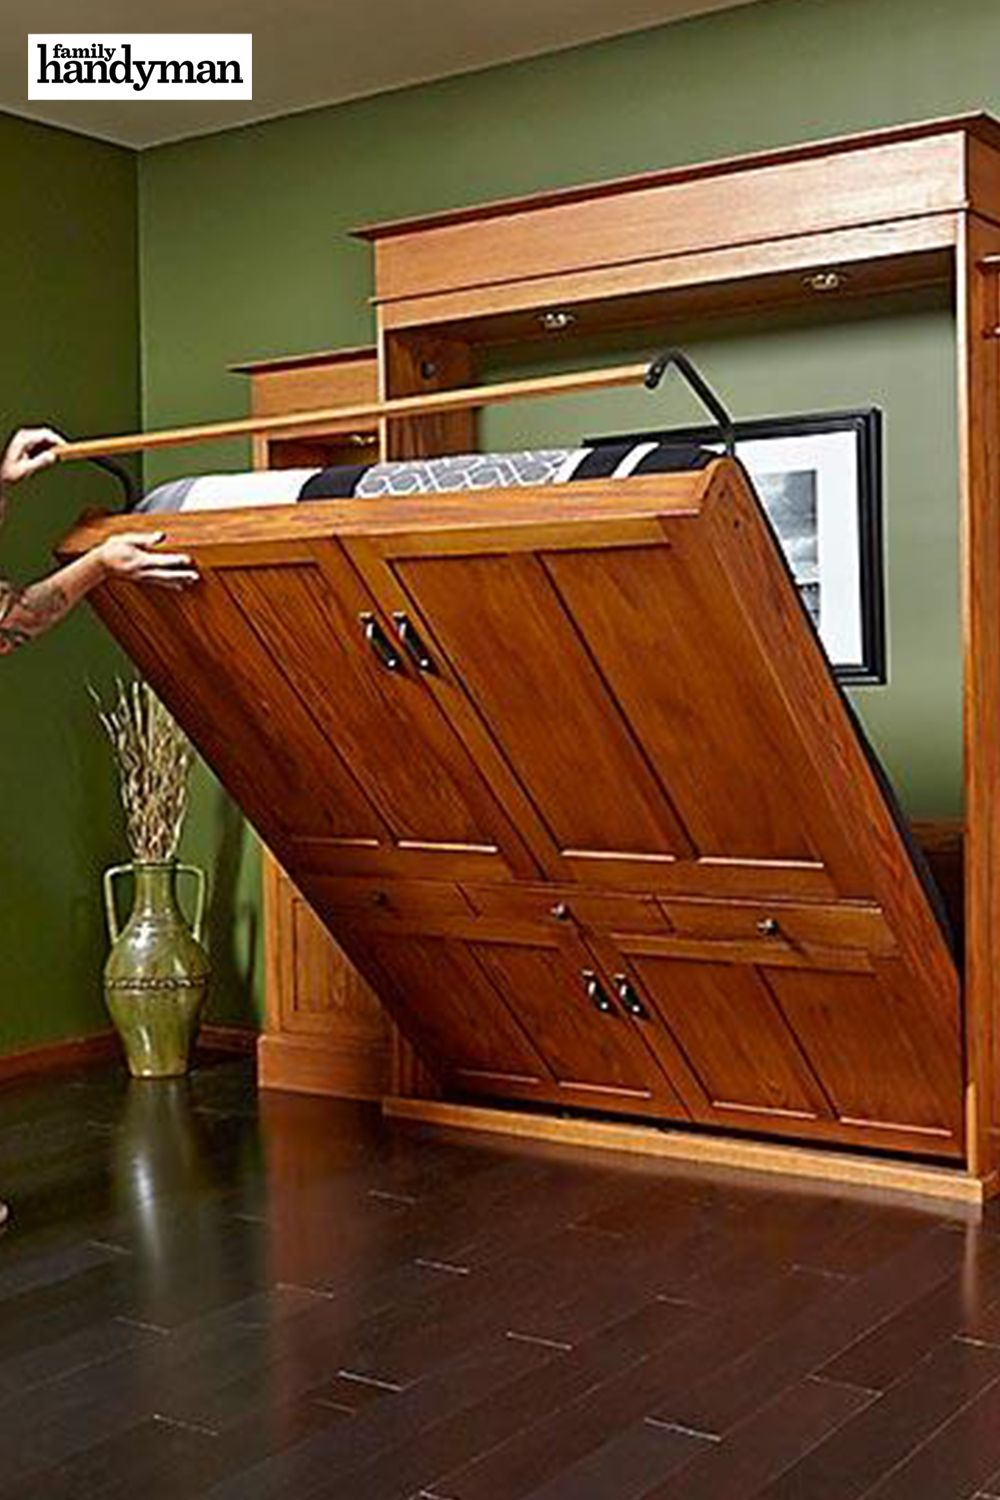 12 Masterpiece Woodworking Projects You Can Diy In 2020 Cool Woodworking Projects Simple Woodworking Plans Diy Furniture Redo